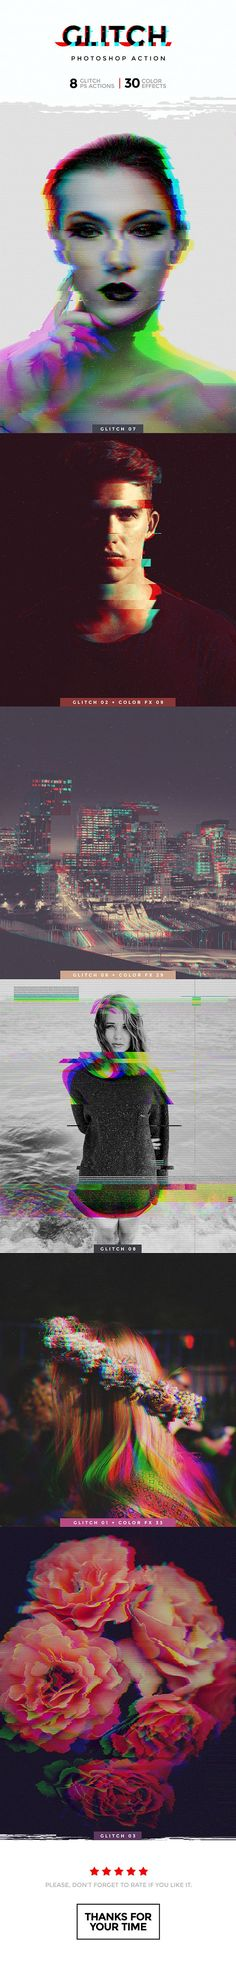 Glitch Photoshop Action — Photoshop ATN #music #pixels • Download ➝ https://graphicriver.net/item/glitch-photoshop-action/19144570?ref=pxcr #AdobePhotoshopTutorial